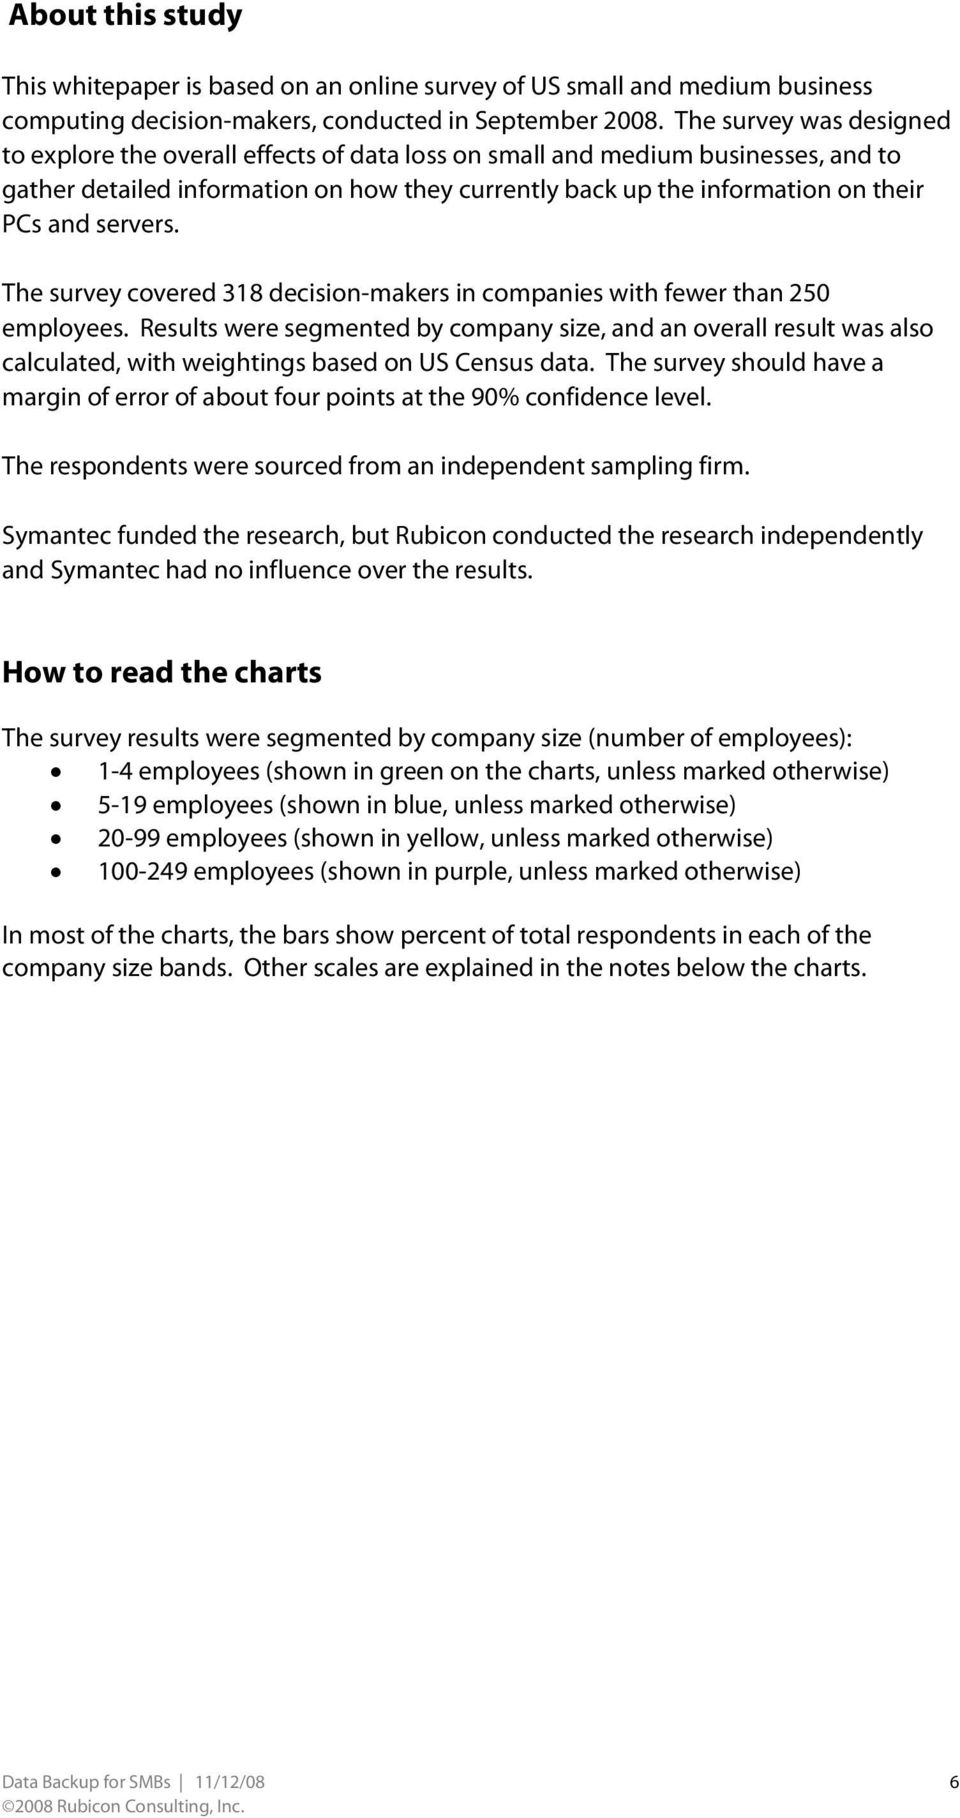 servers. The survey covered 318 decision-makers in companies with fewer than 250 employees.